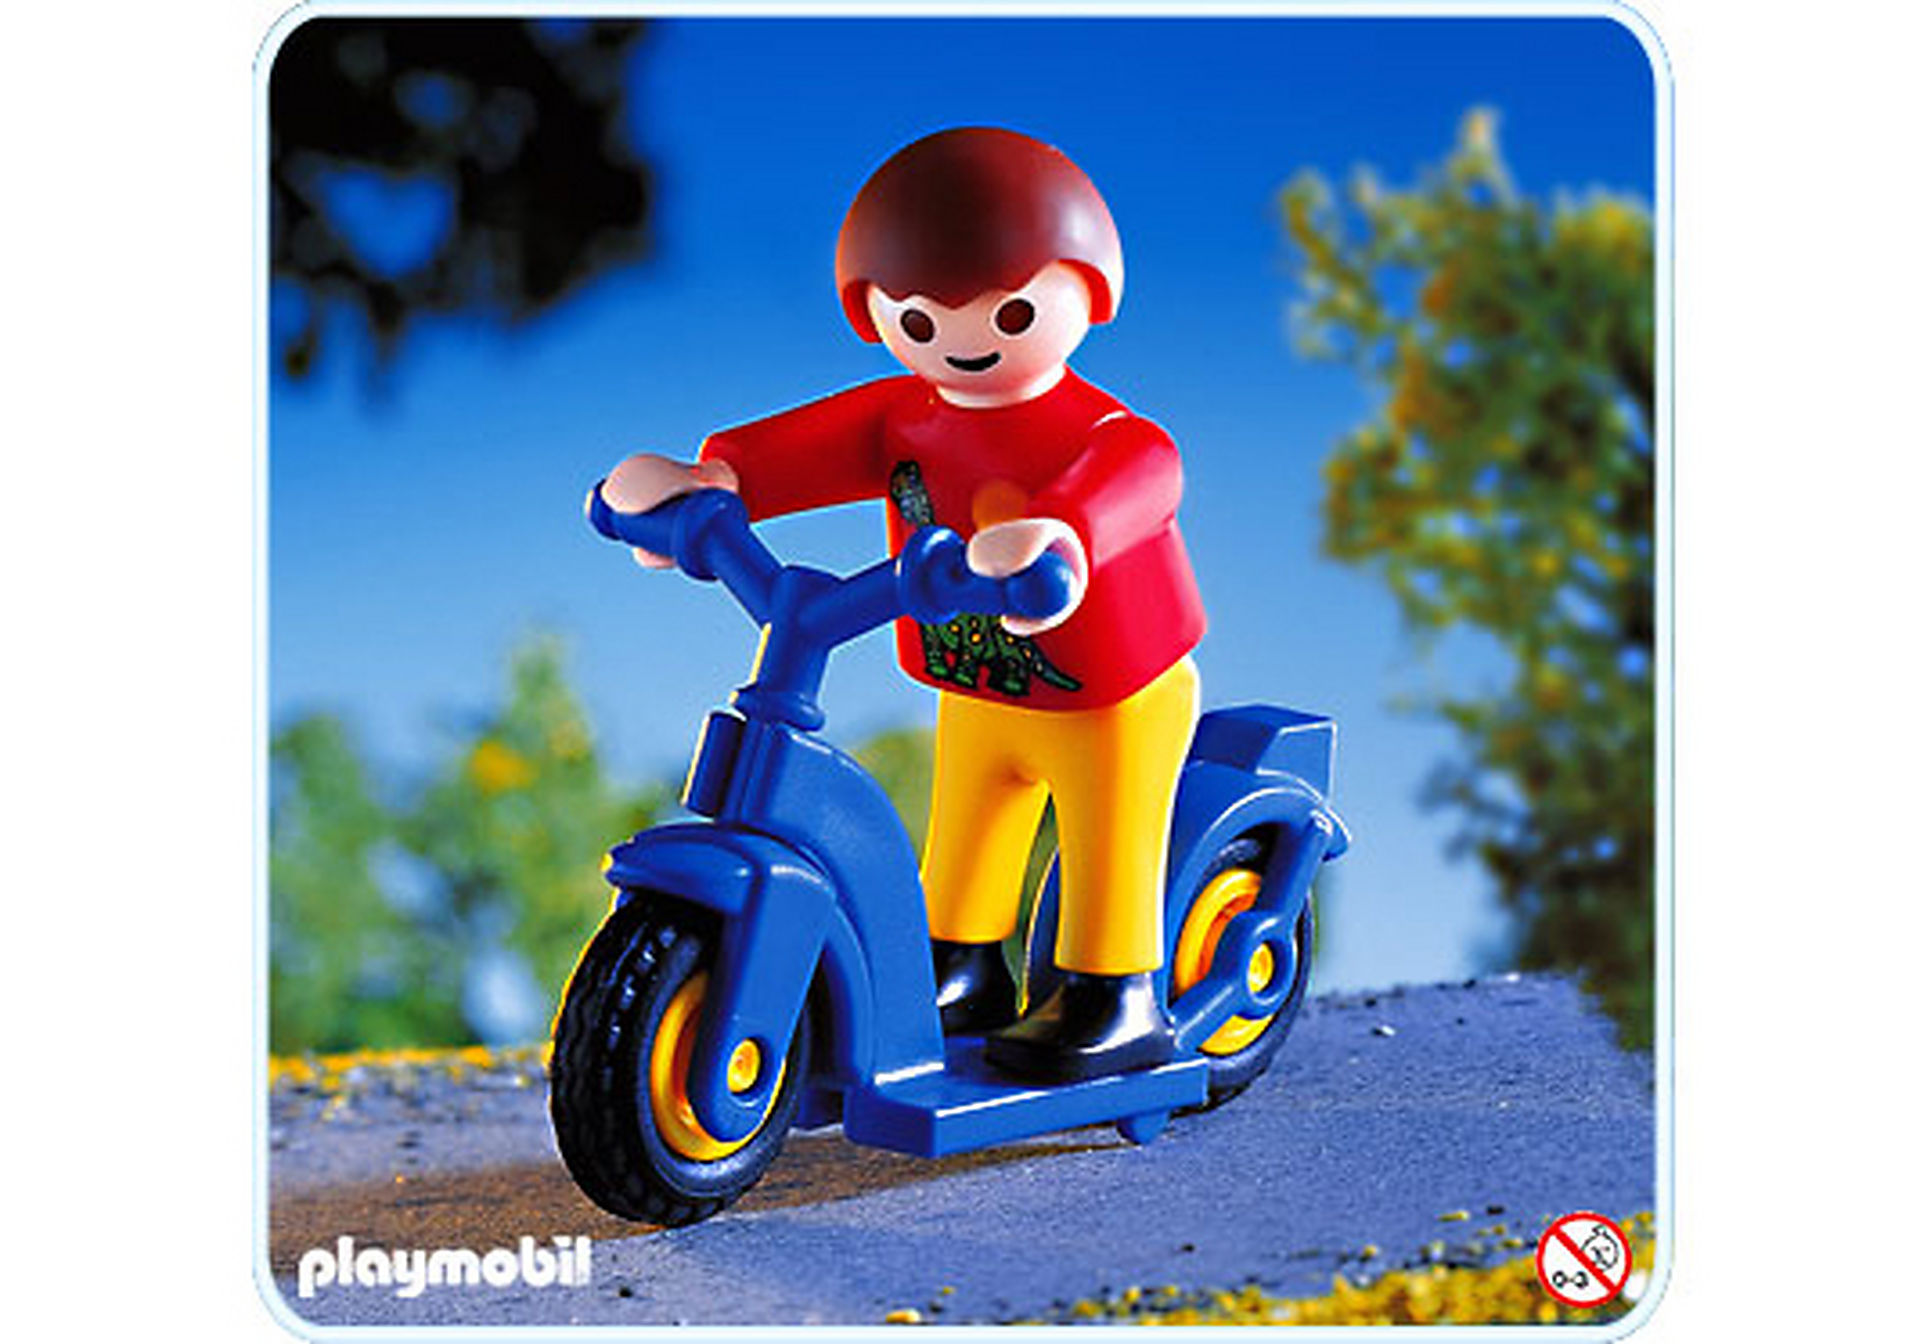 http://media.playmobil.com/i/playmobil/4538-A_product_detail/Enfant / patinette